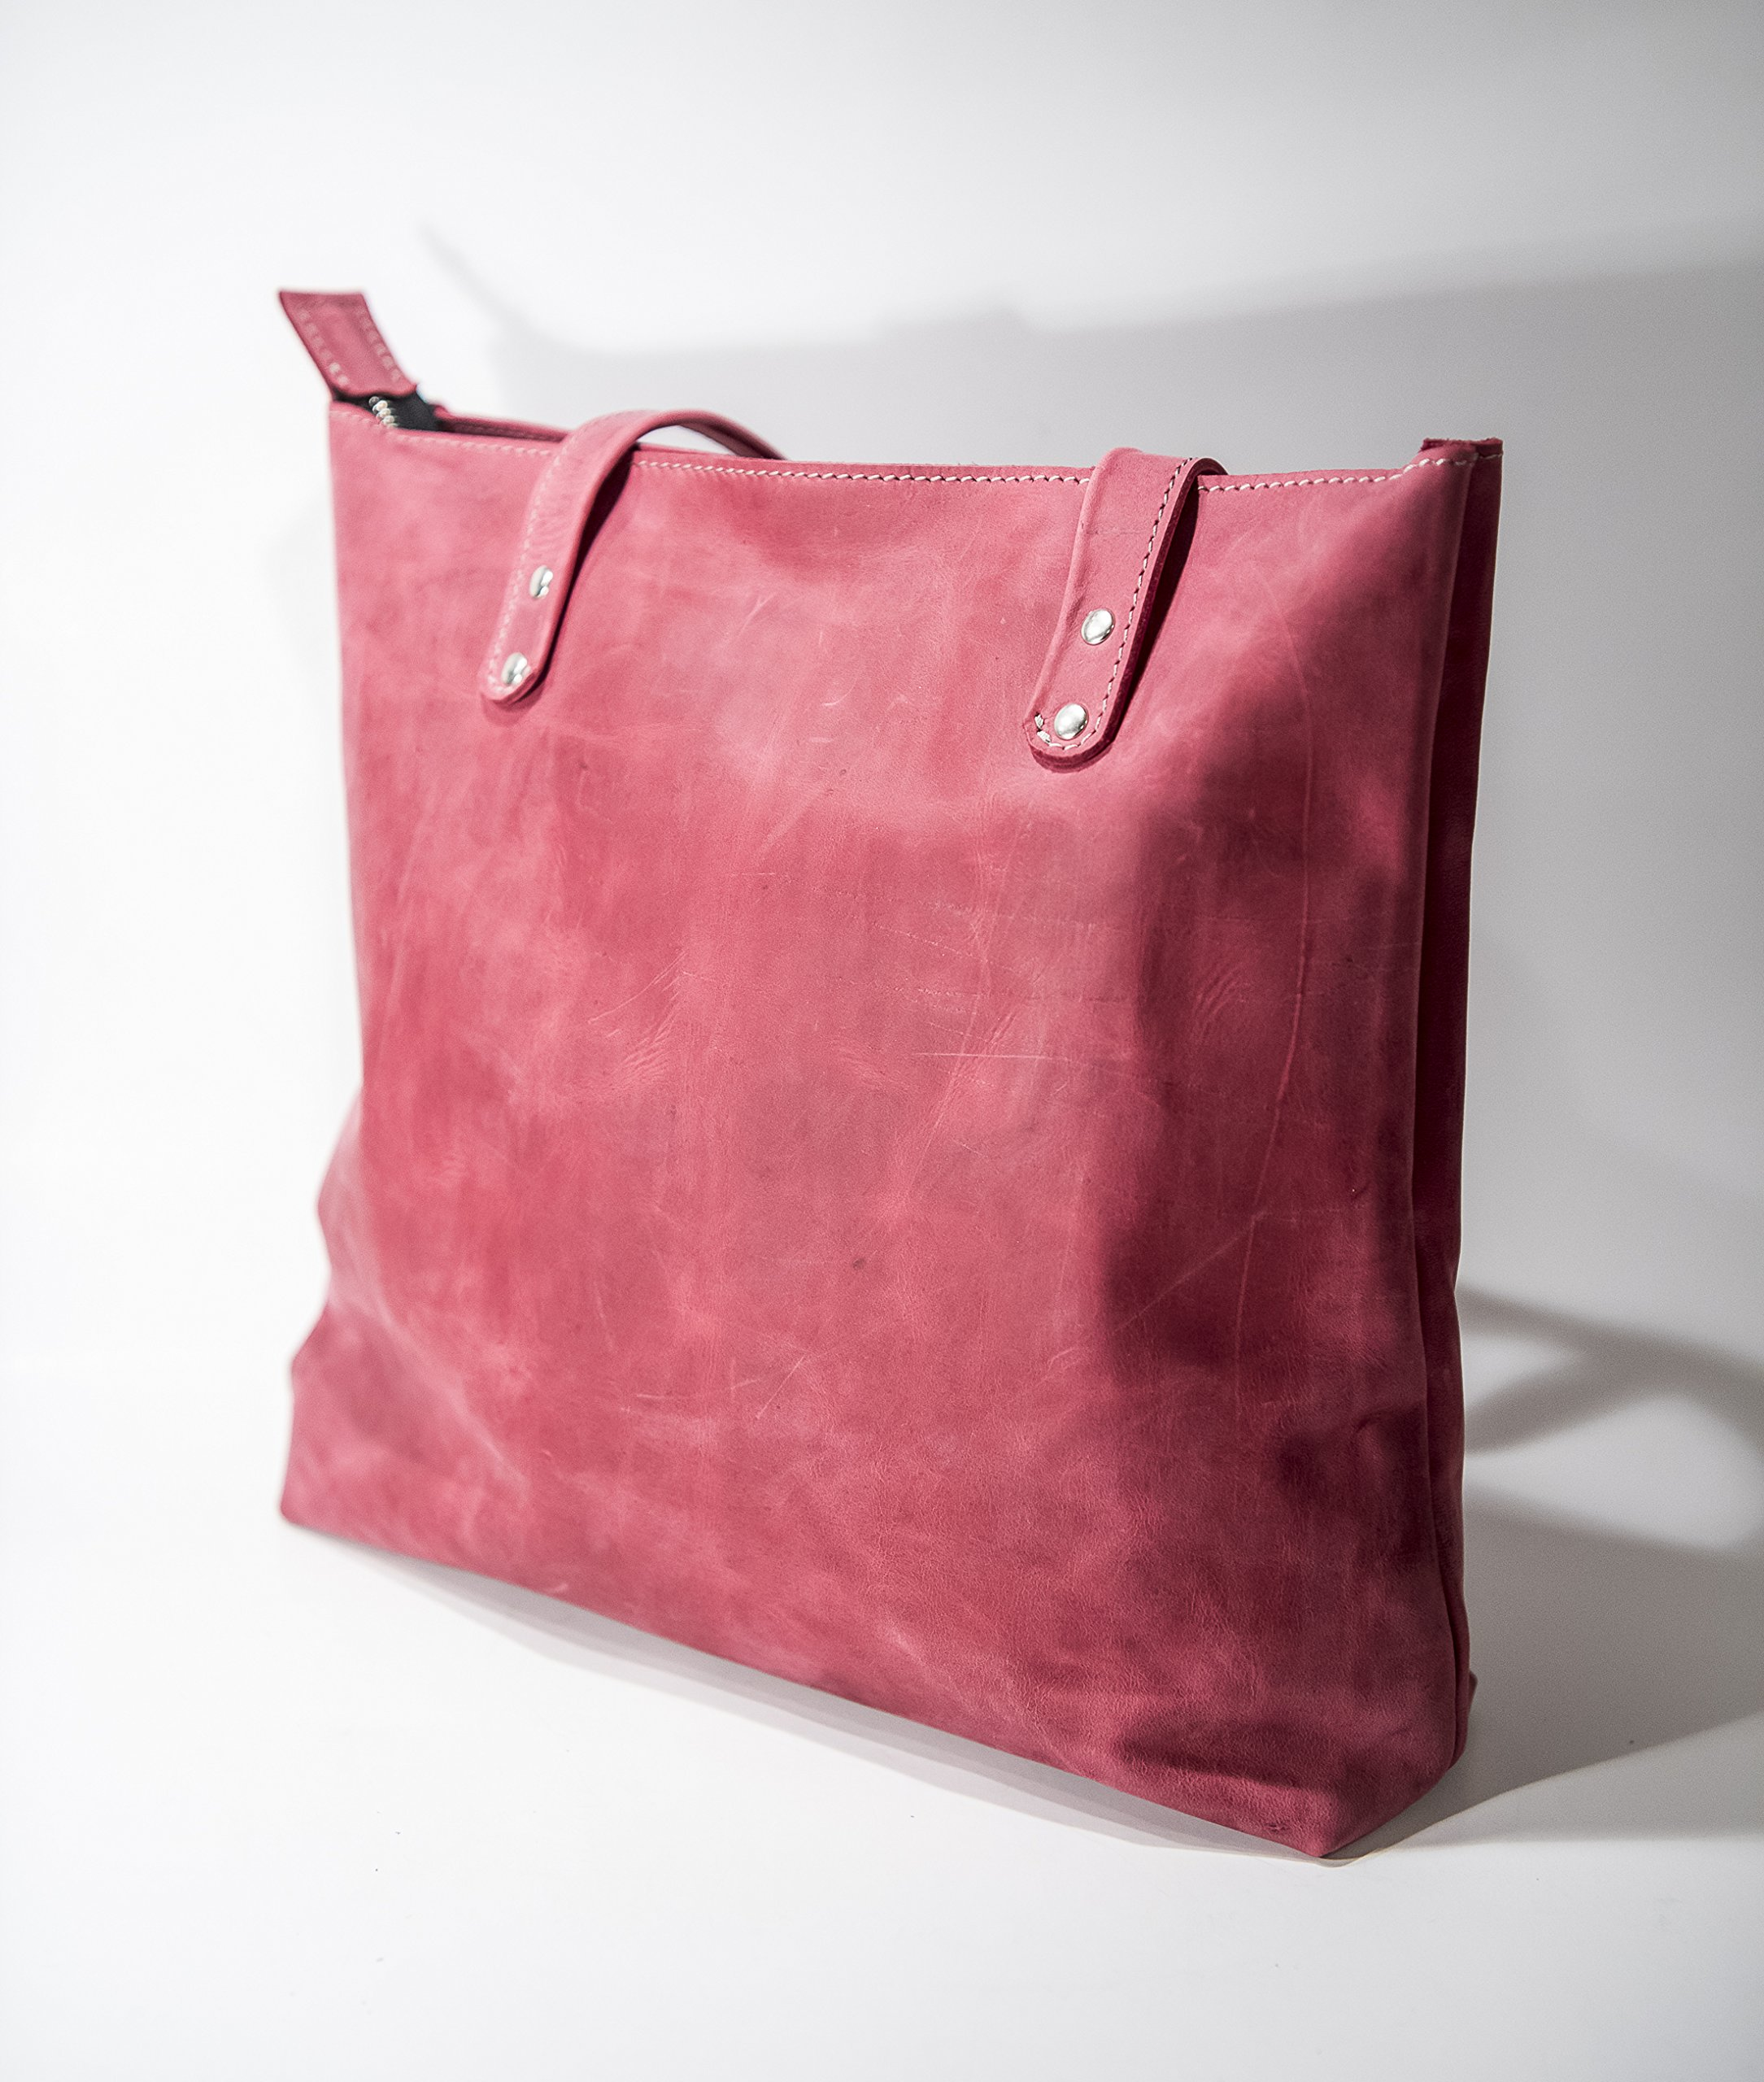 ADOREinstyle Top Quality Leather Shoulder Bag - Leather Handbag - Full-grain Leather - Customizable Bag - Pink Leather Bag. Inc. dust bag - handmade-bags